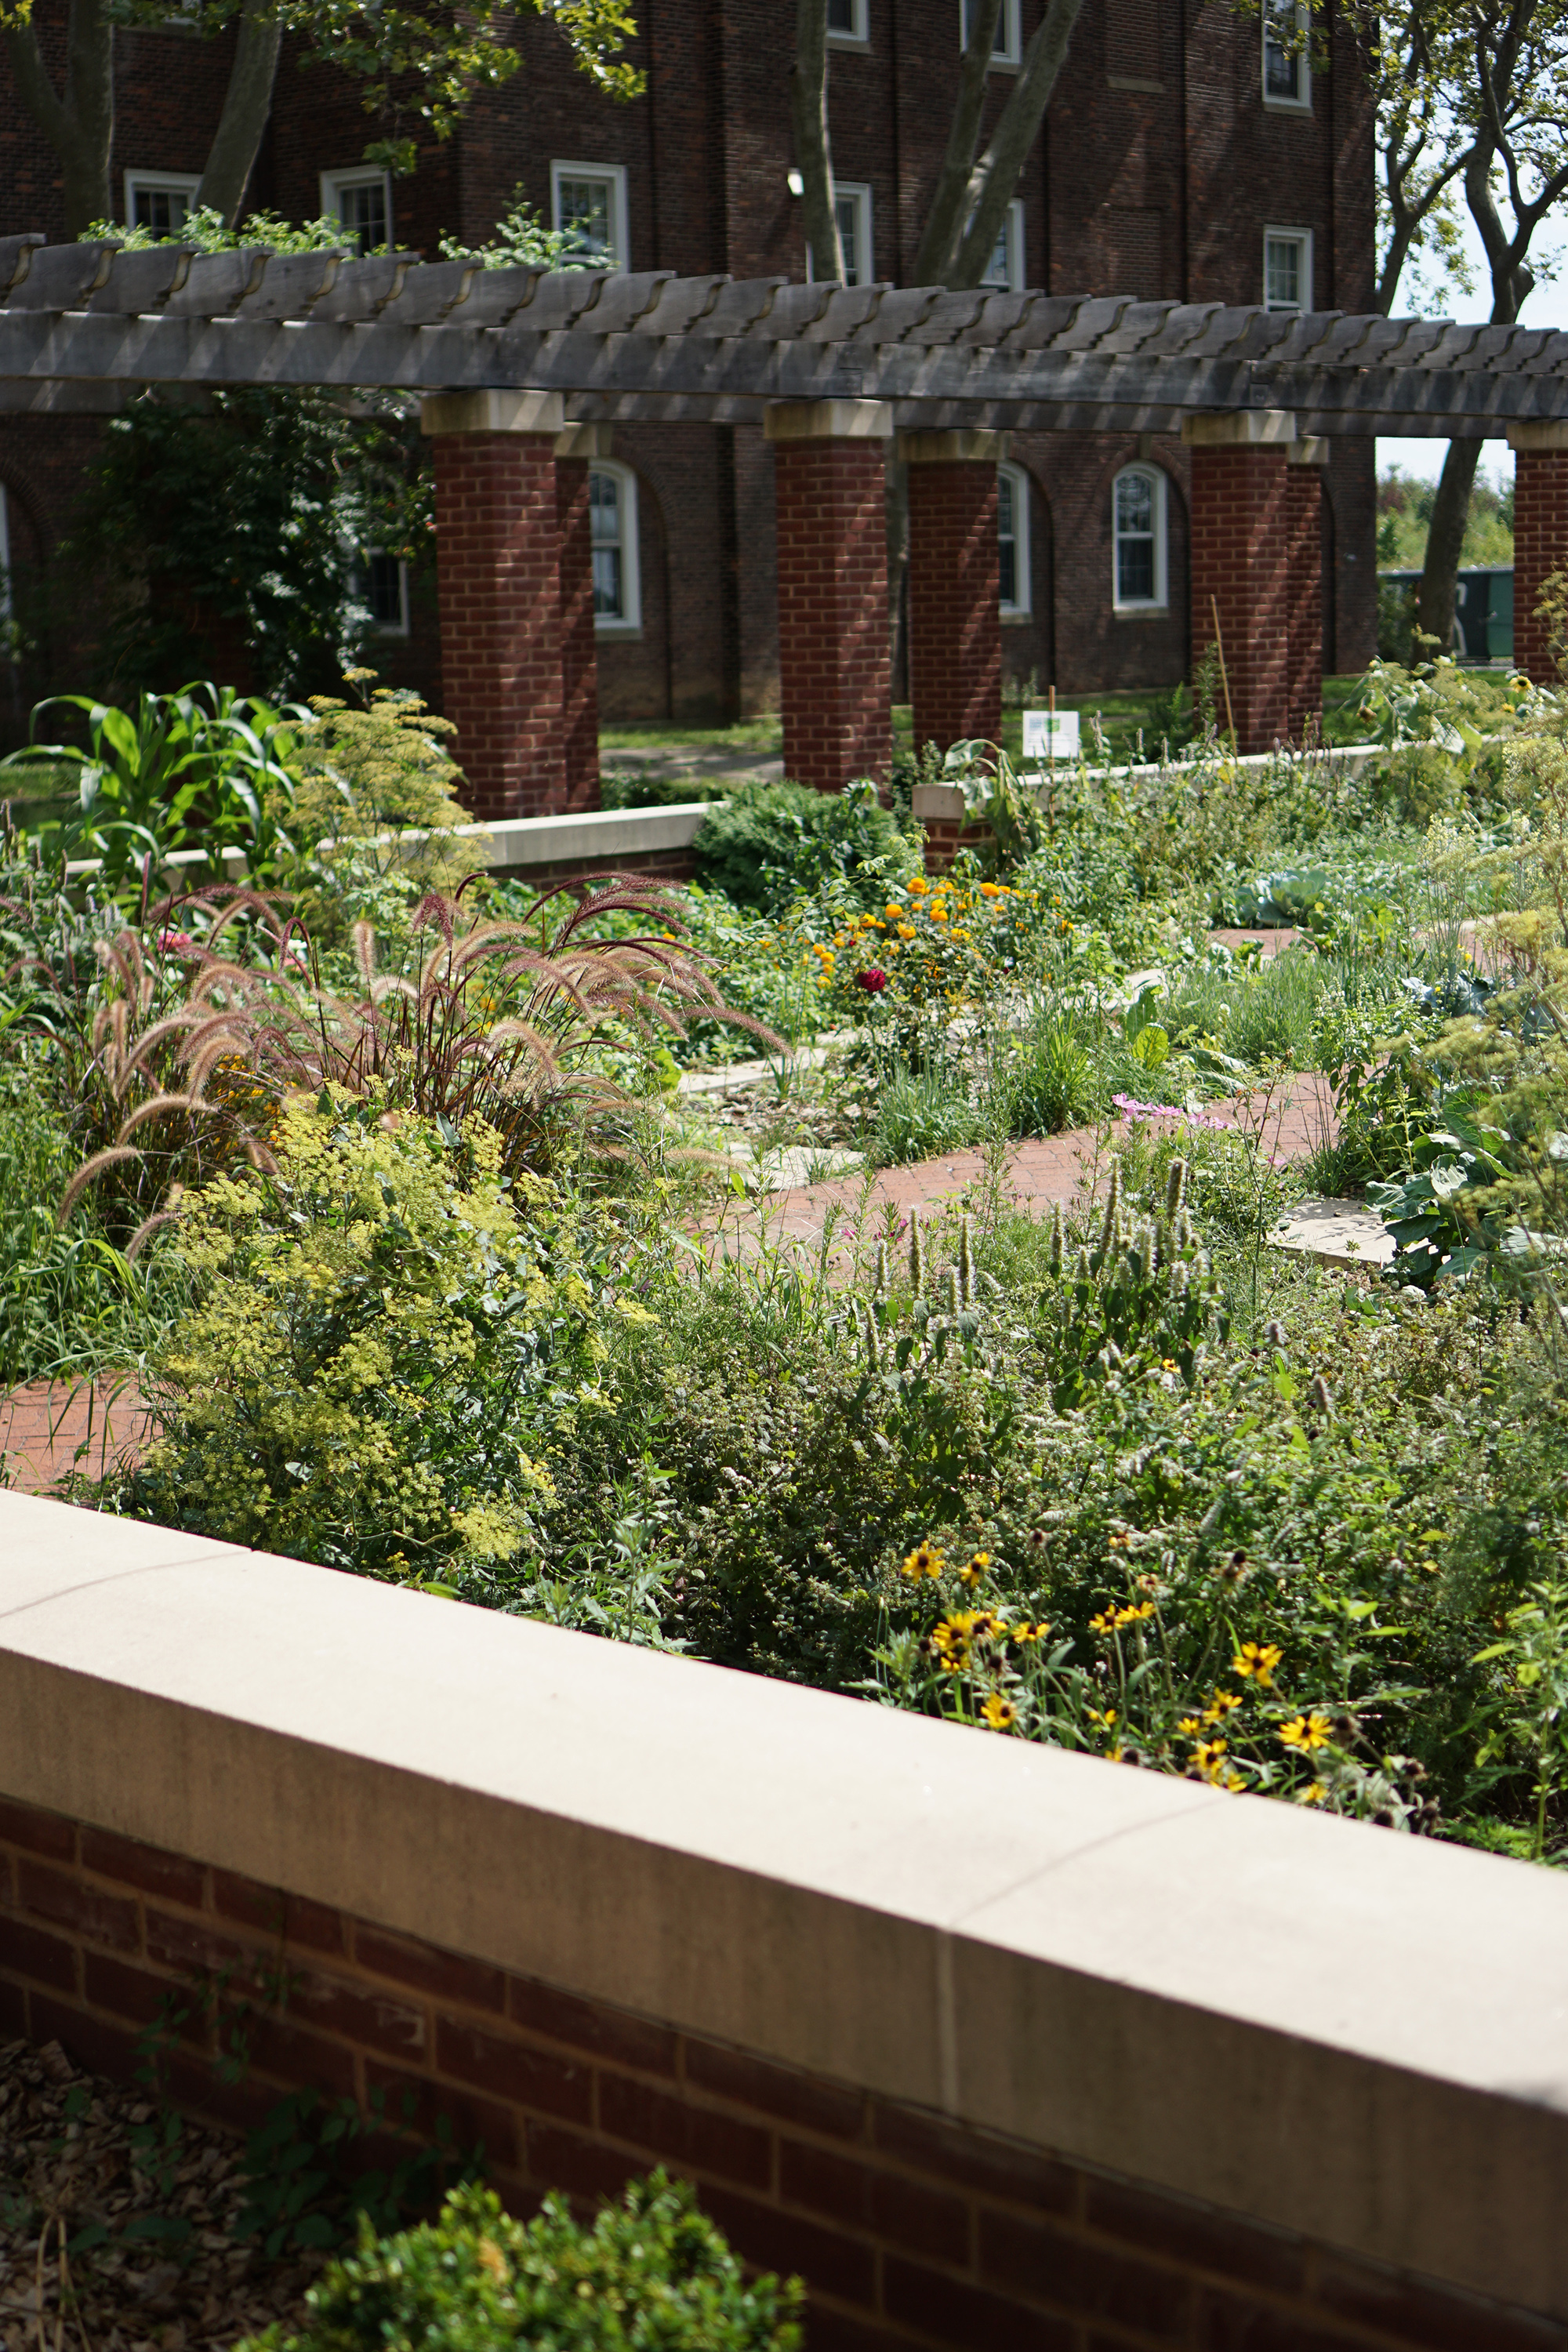 Garden at the New York Harbor School / NYC Green City Guide / Darker than Green